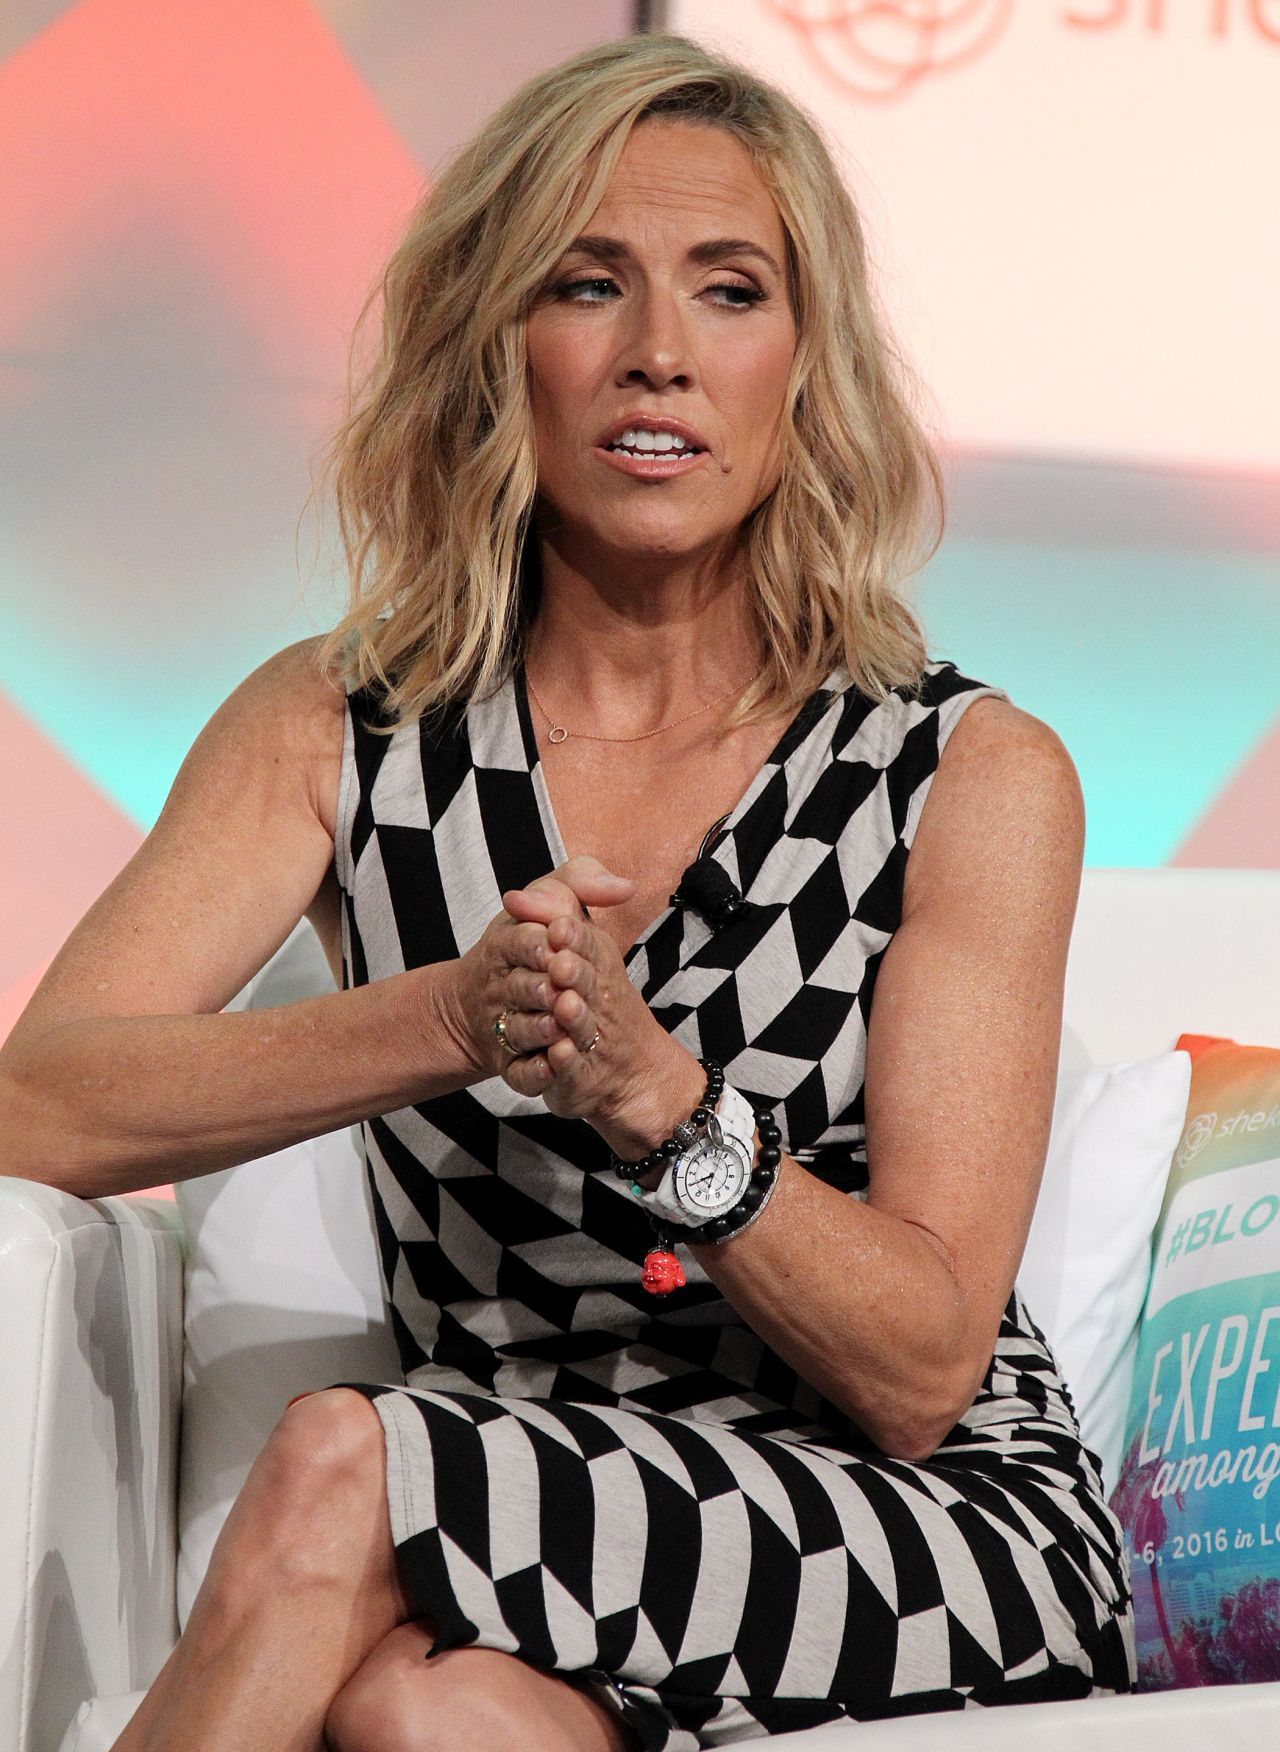 Sheryl Crow Blogher16 Experts Among Us Conference At L